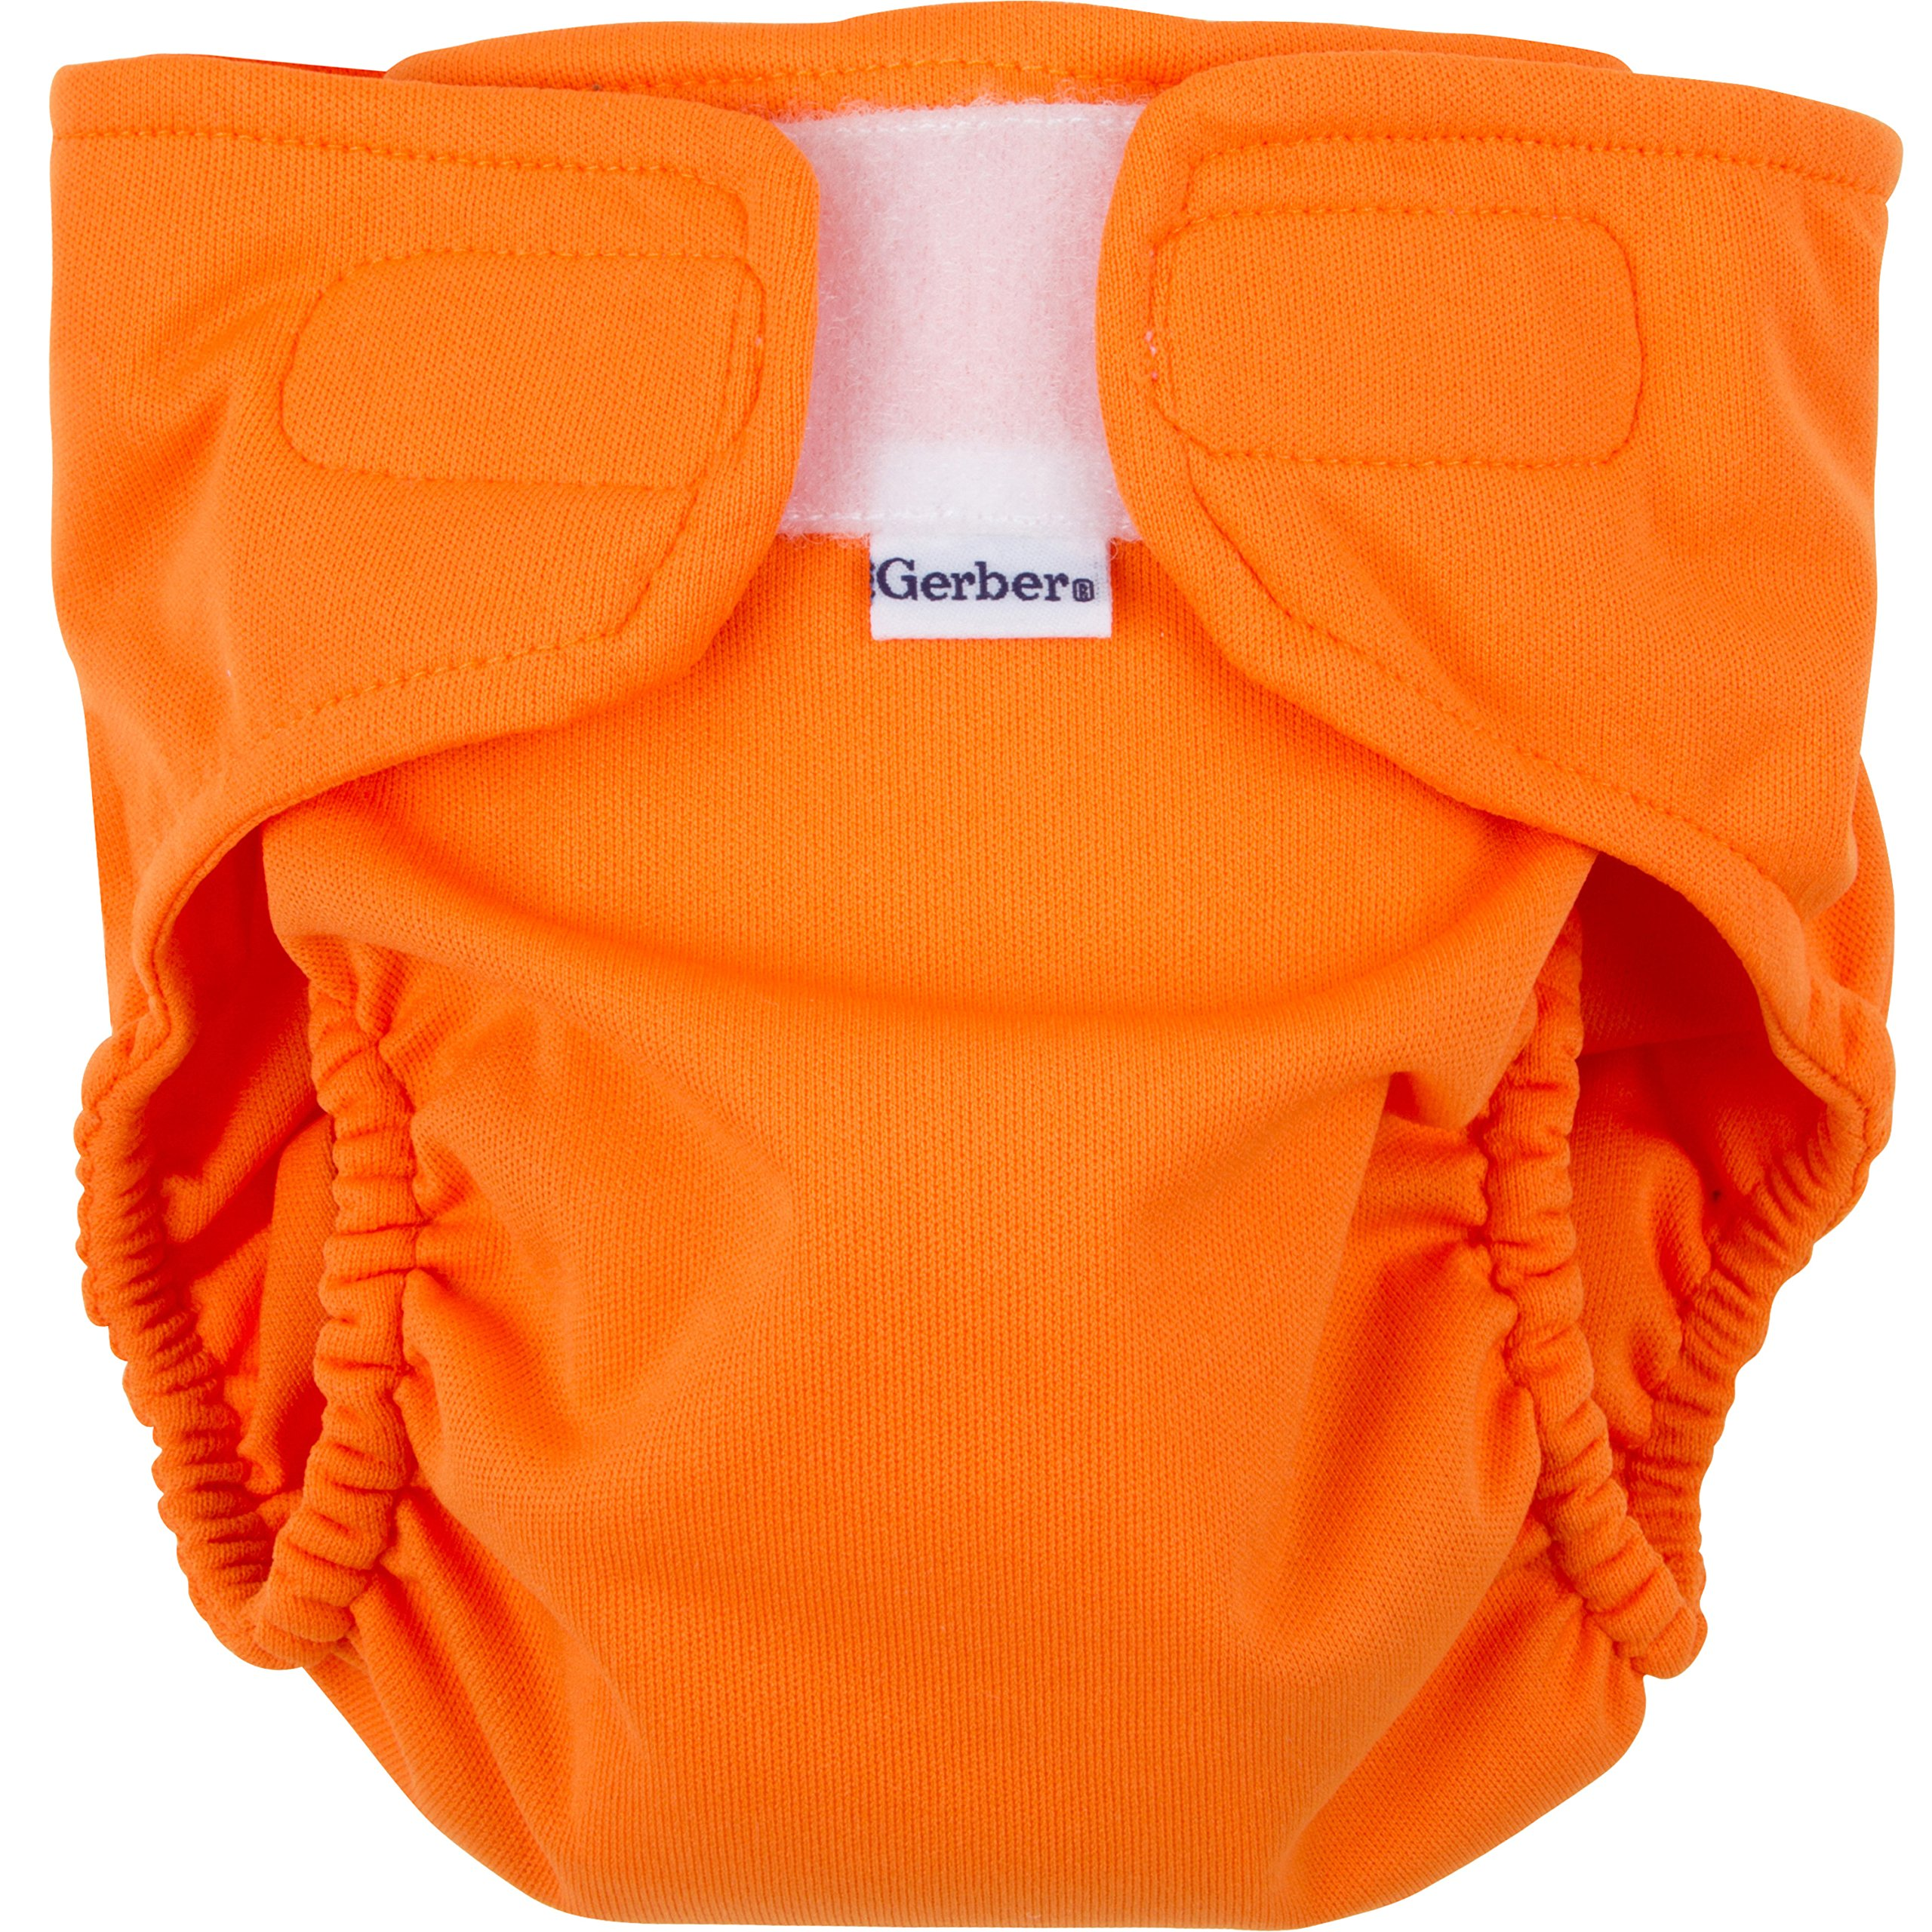 Gerber All-in-One Reusable Diaper with Insert Starter Set, Orange, Small